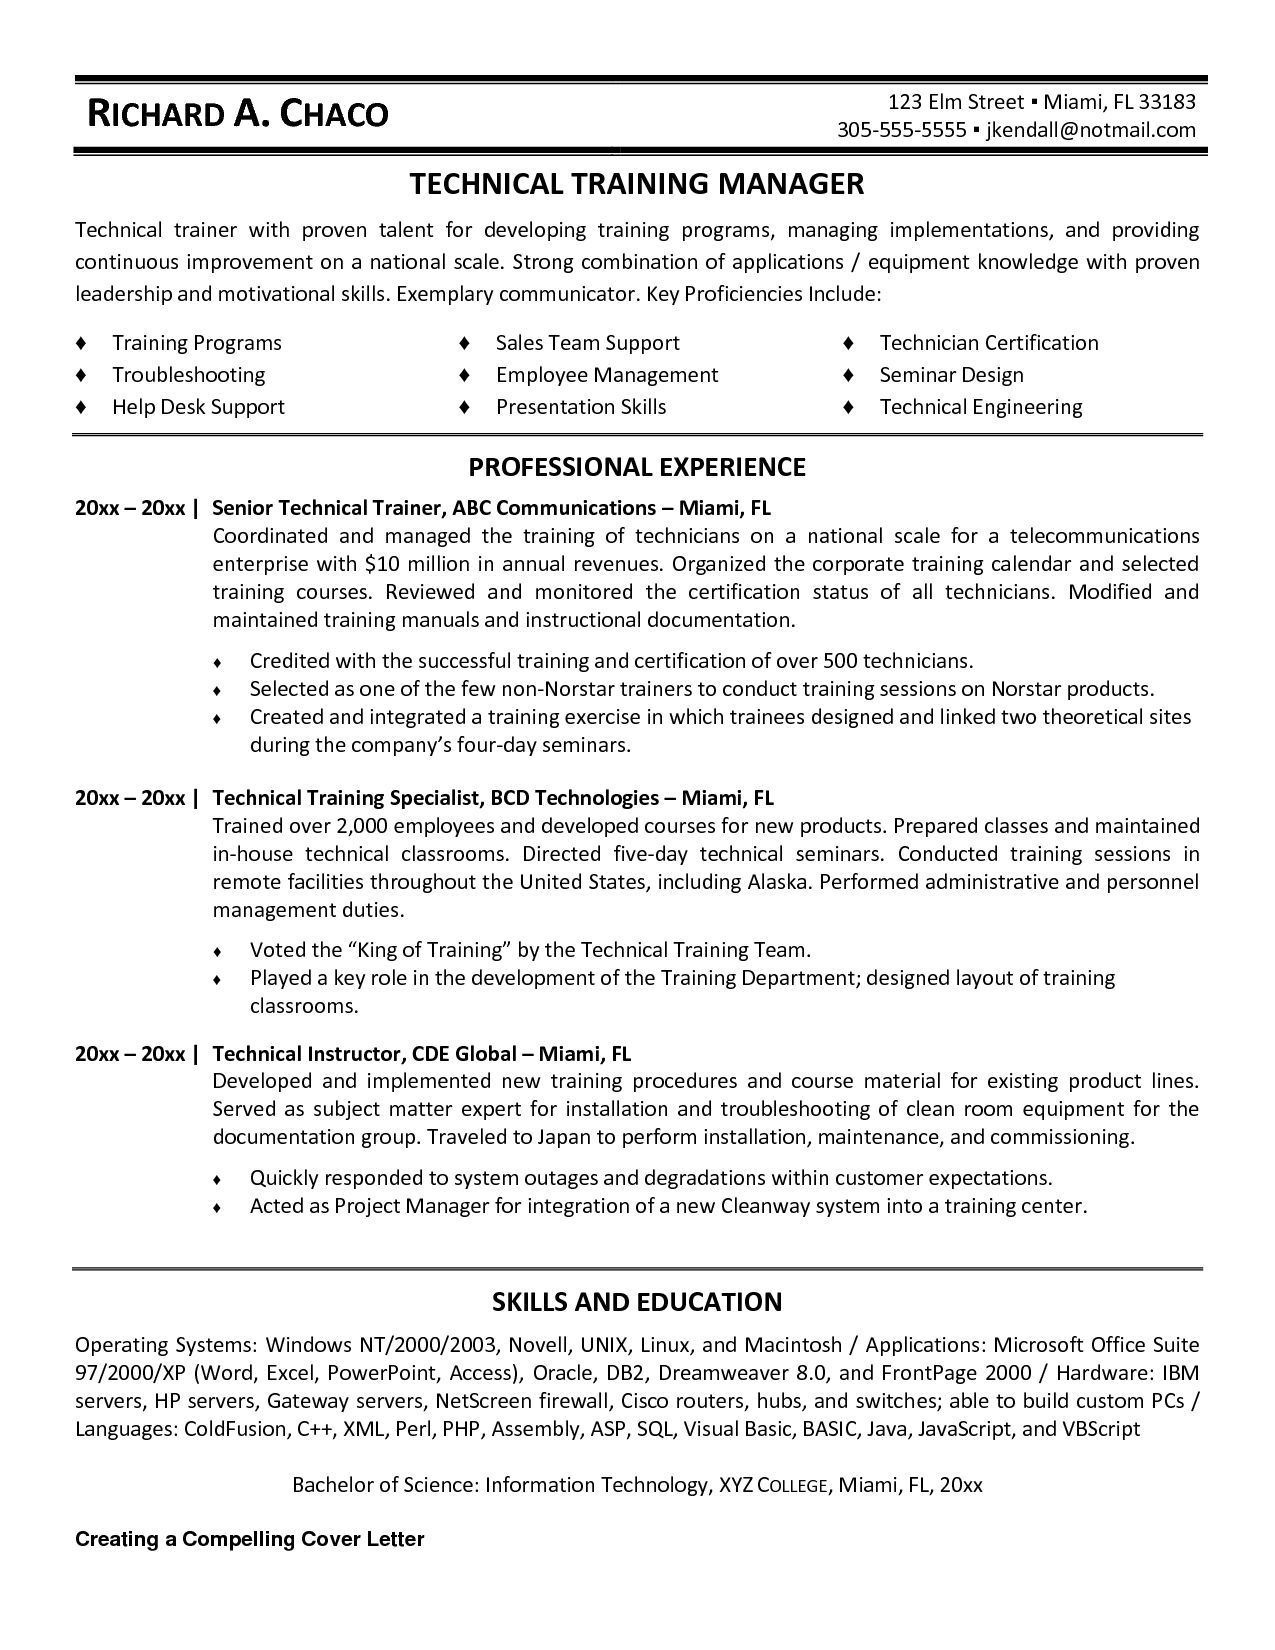 resume objective examples for trainer